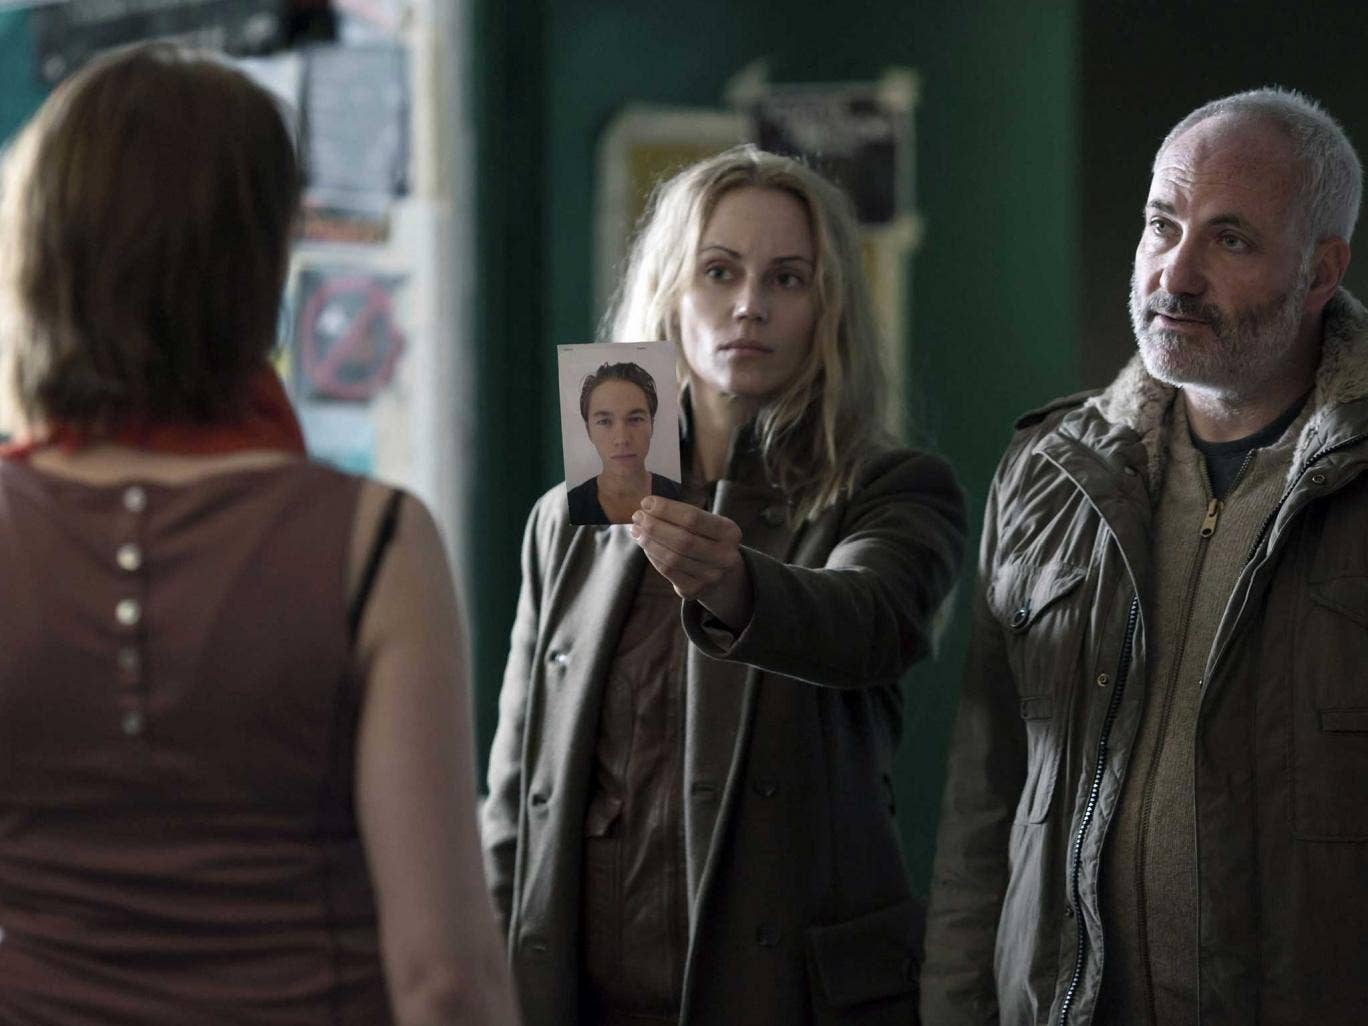 Get the picture: Sofia Helin and Kim Bodnia in a new series of 'The Bridge'